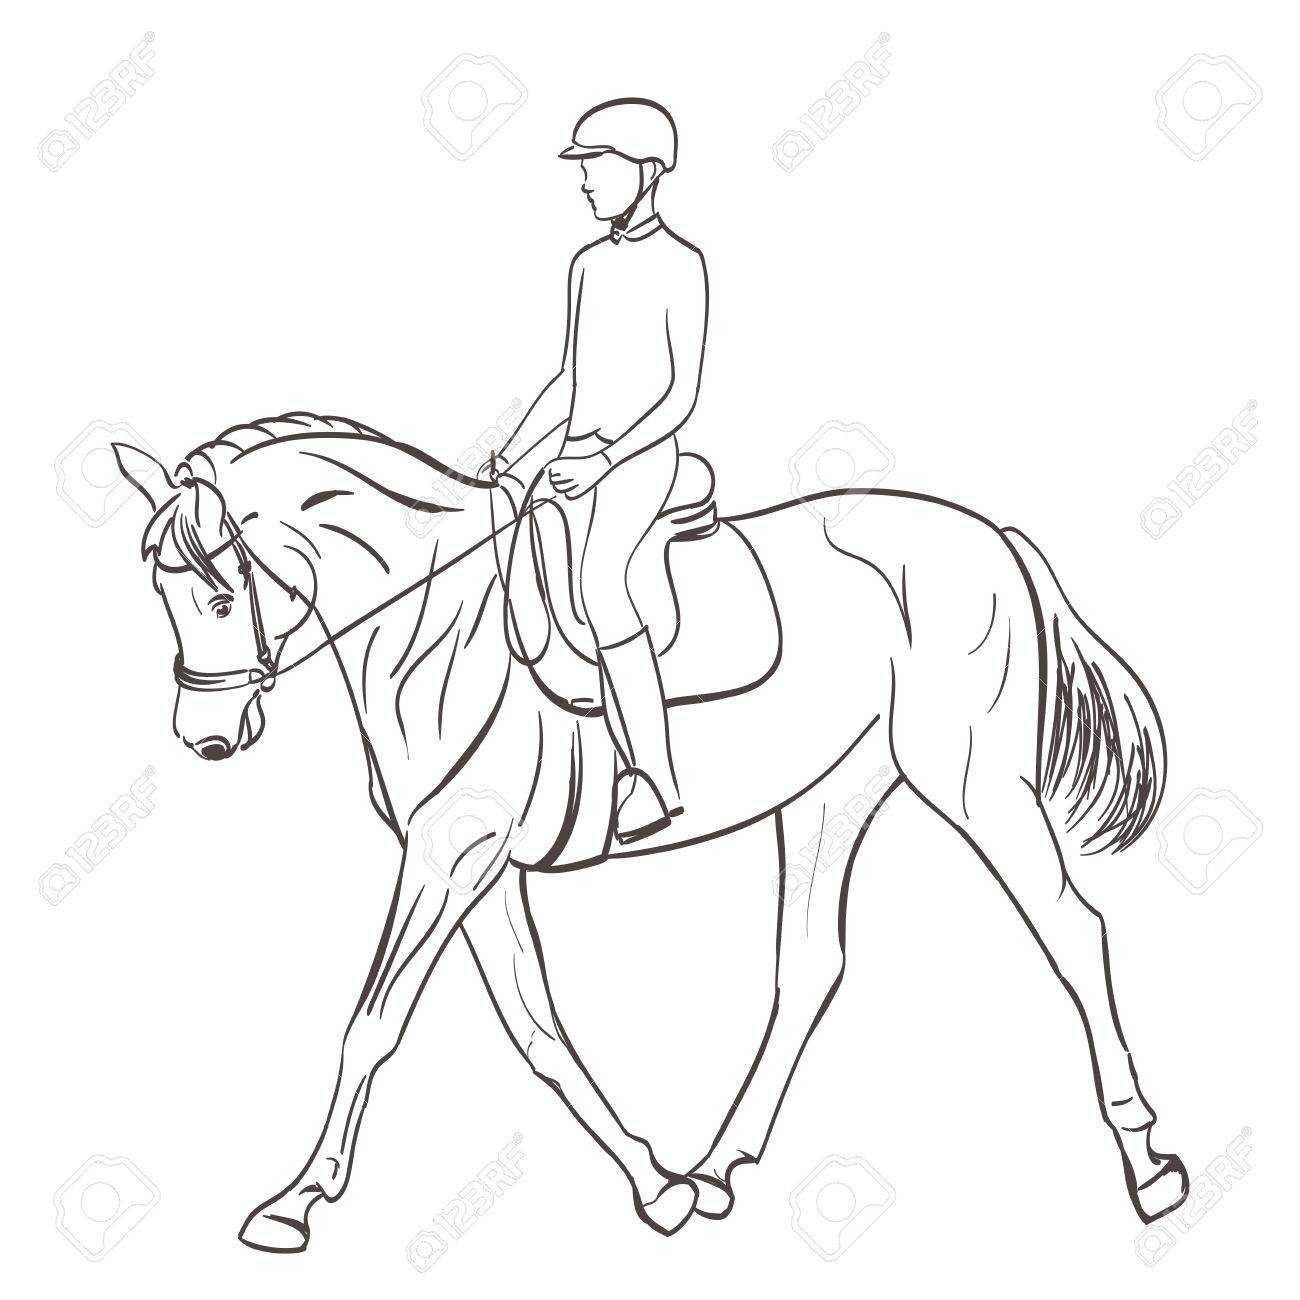 1300x1300 Horse Rider Sketch. Equestrian Theme Vector Illustration Royalty